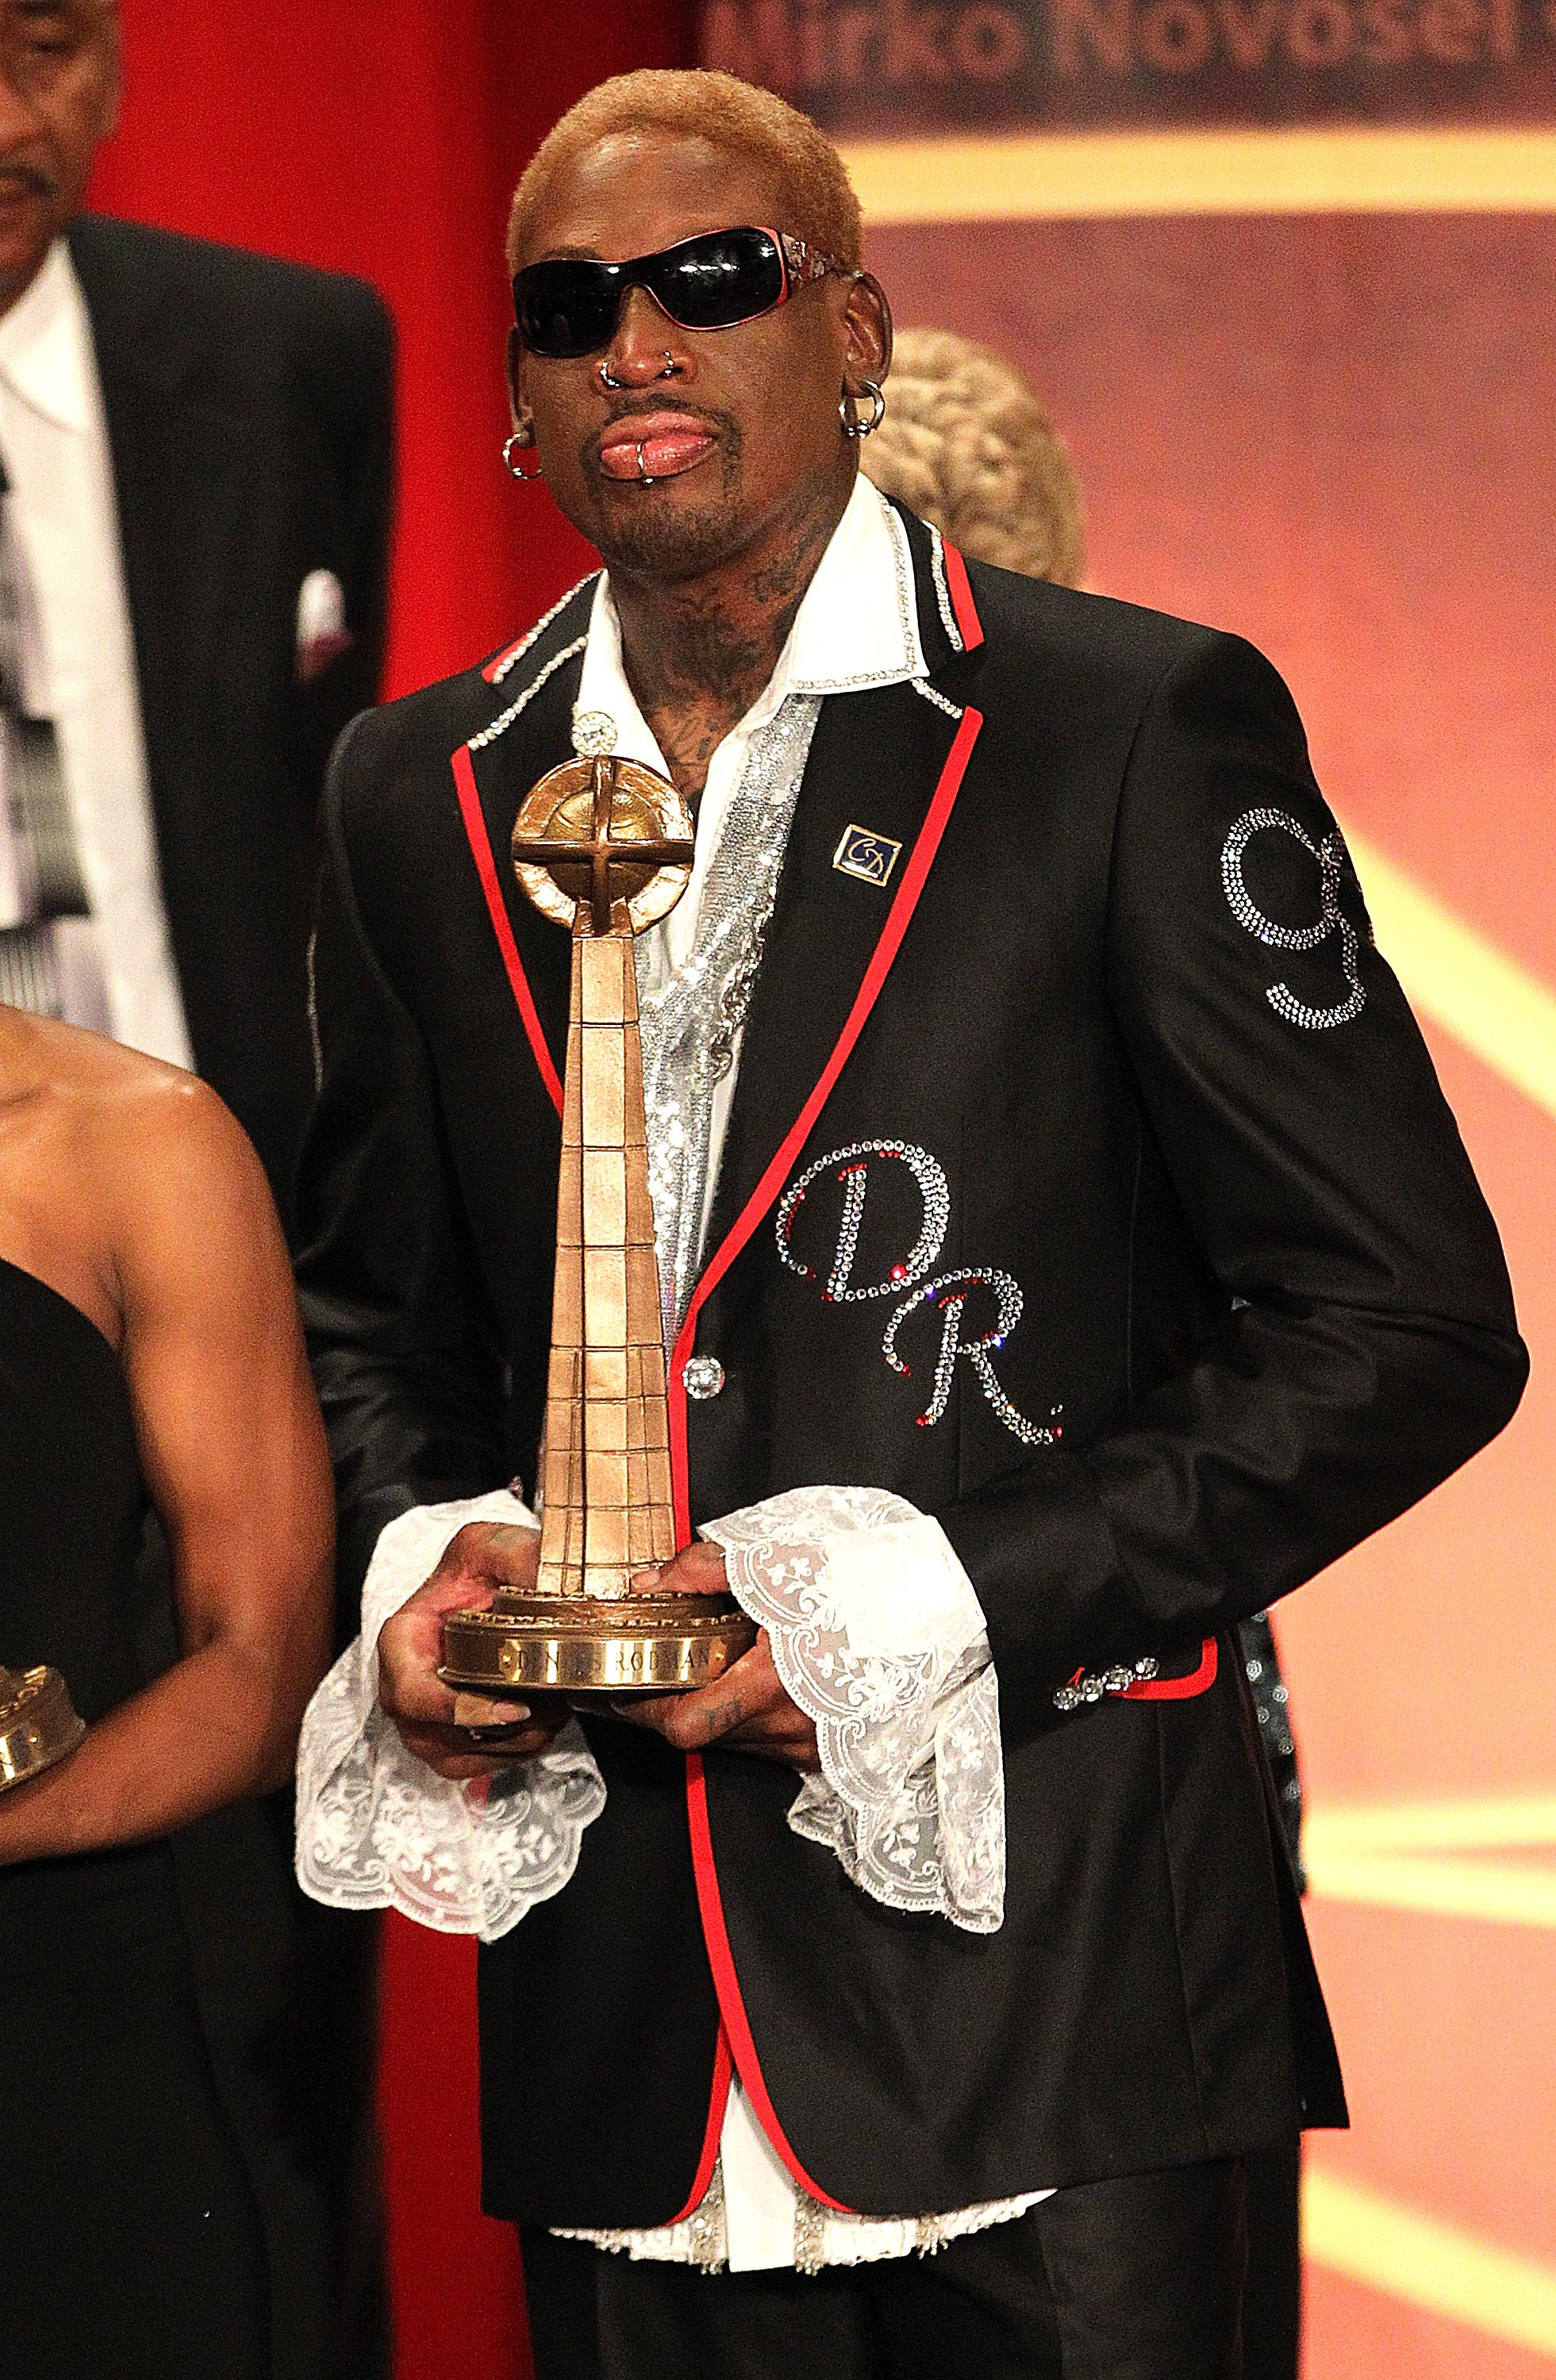 Dennis Rodman | Boyfriends | Pinterest | Dennis rodman, Basketball ... Dennis Rodman Wedding Dress